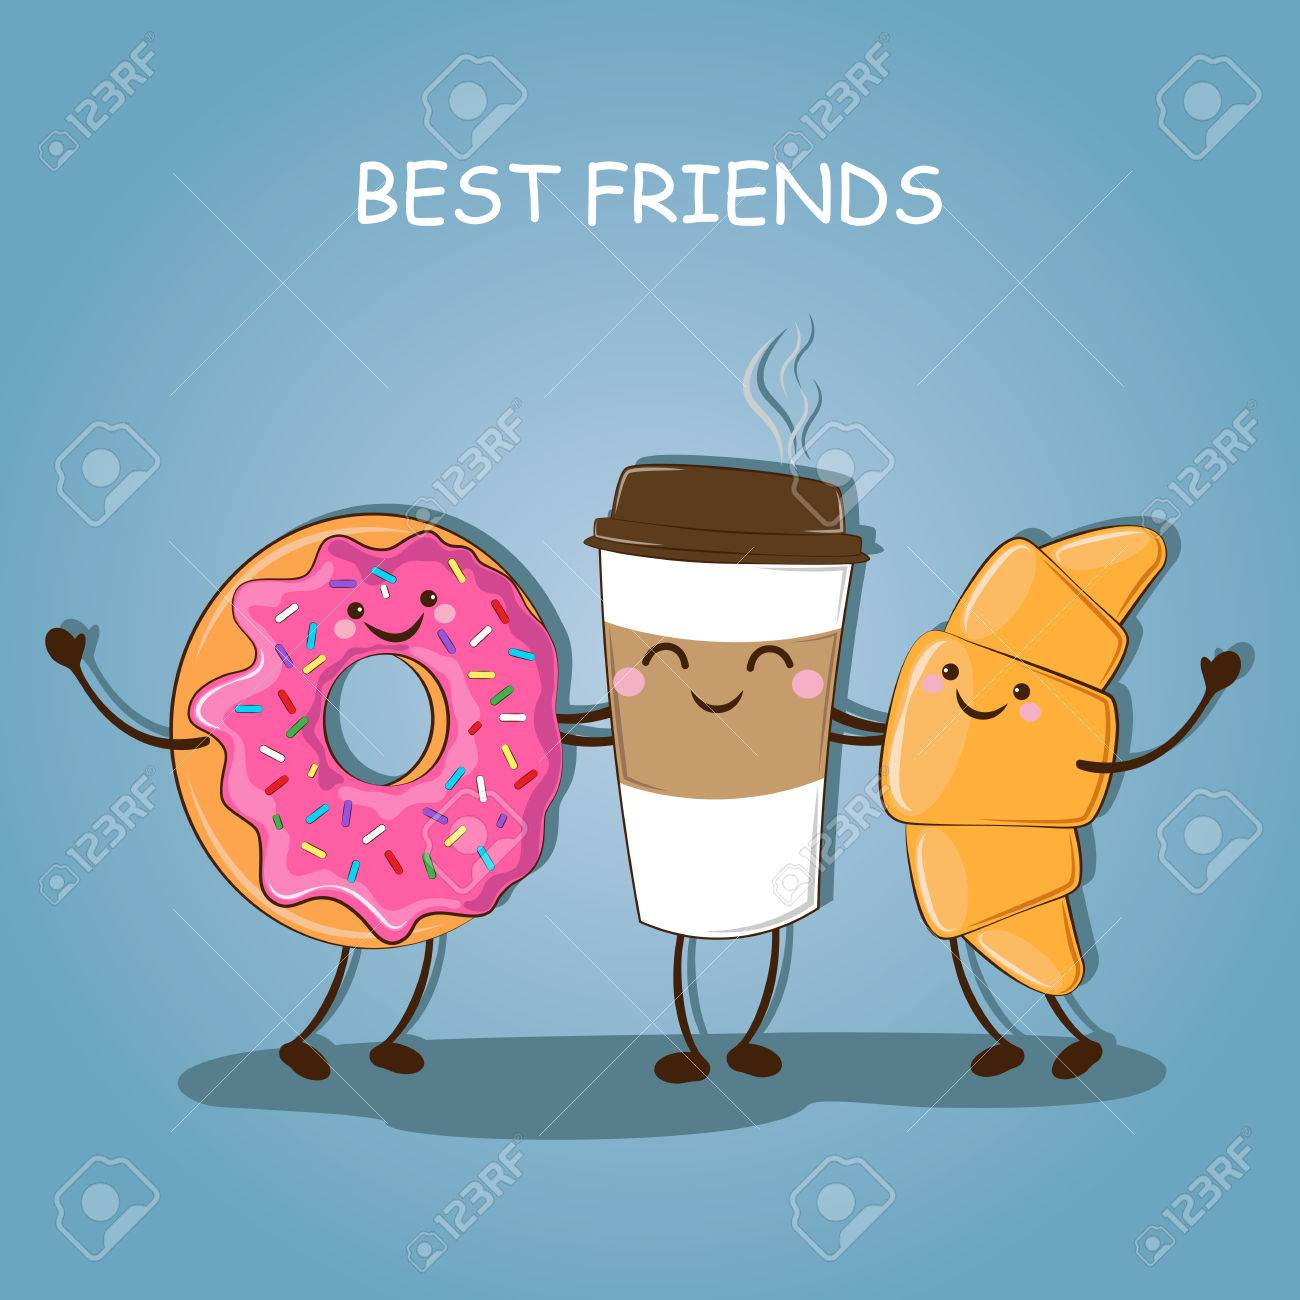 Breakfast Morning Best Friends Cute Picture Of A Coffee Donut